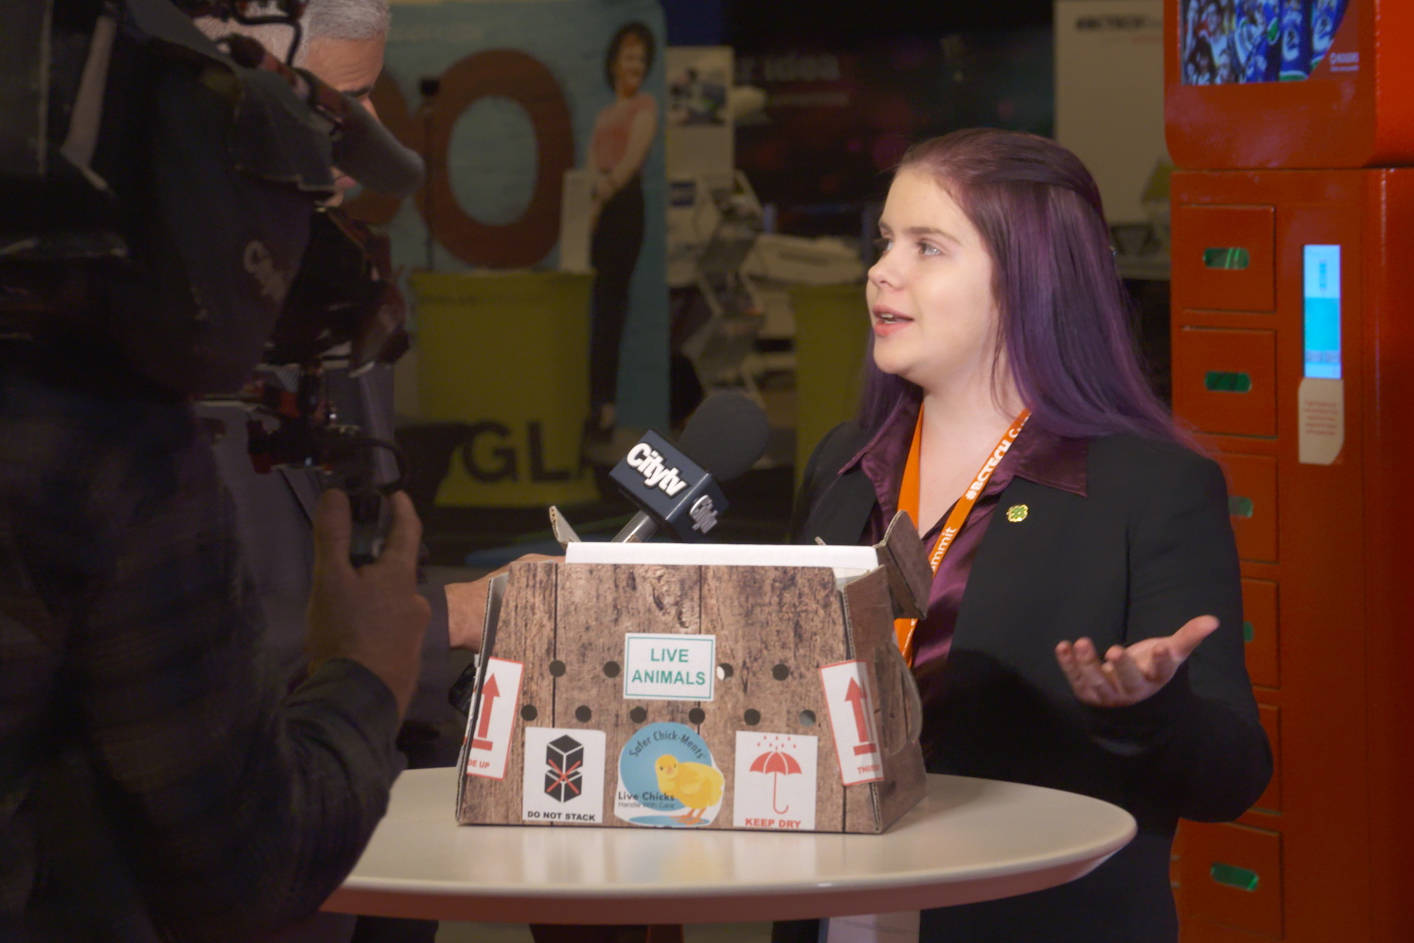 Mac Dykeman presented her chick shipping container at the 2019 Youth Innovation Showcase. Submit your innovation for a chance to present at the 2020 Showcase!